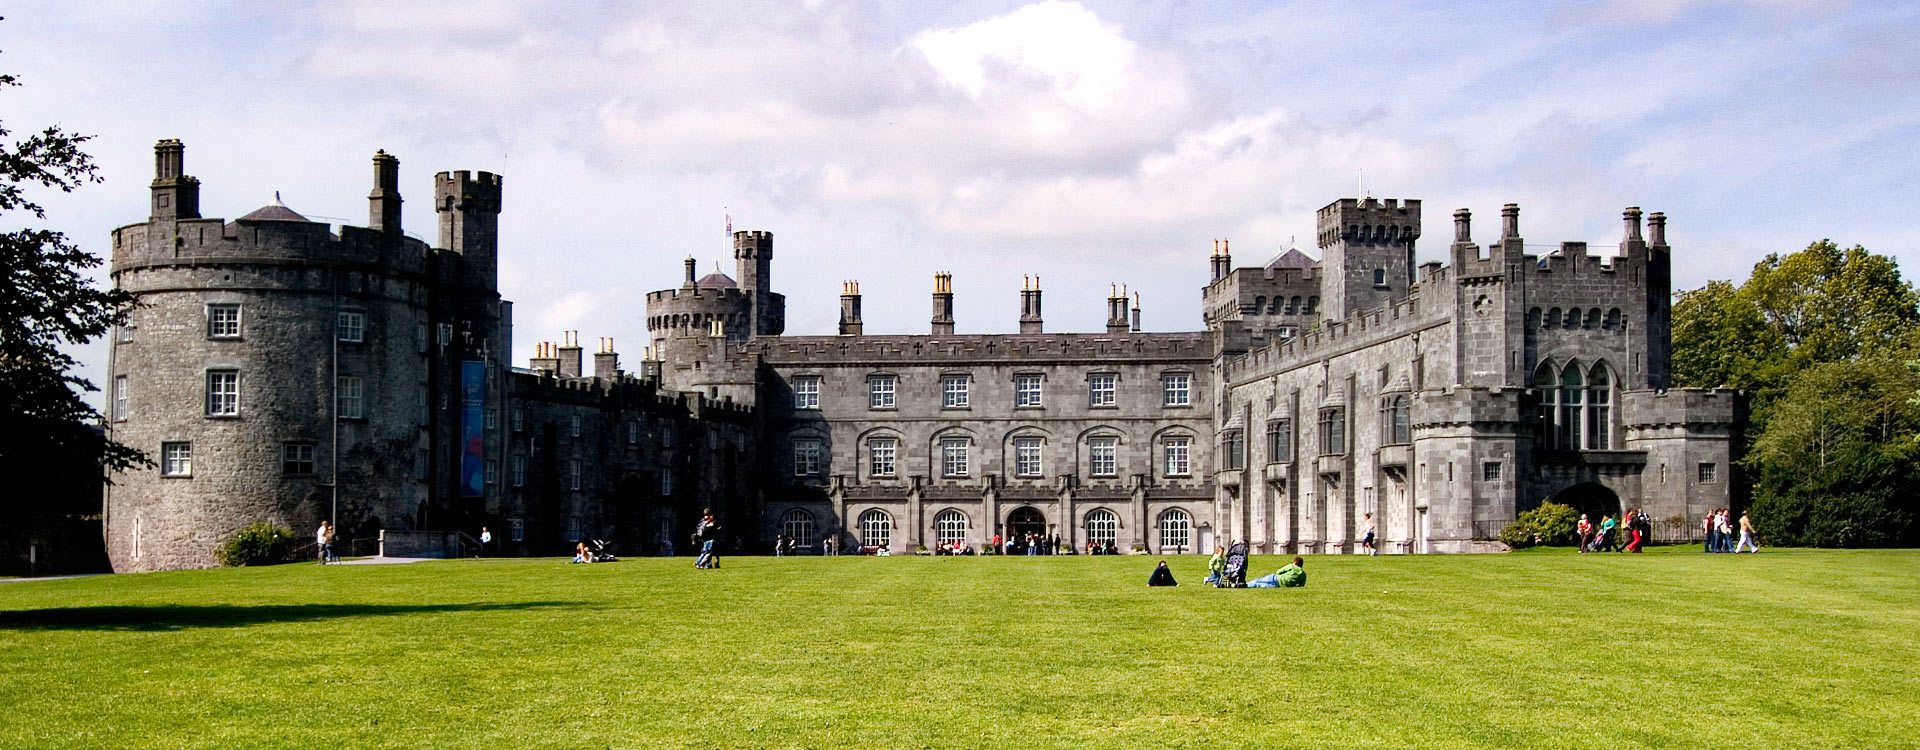 Kilkenny and Wicklow Tour from Dublin